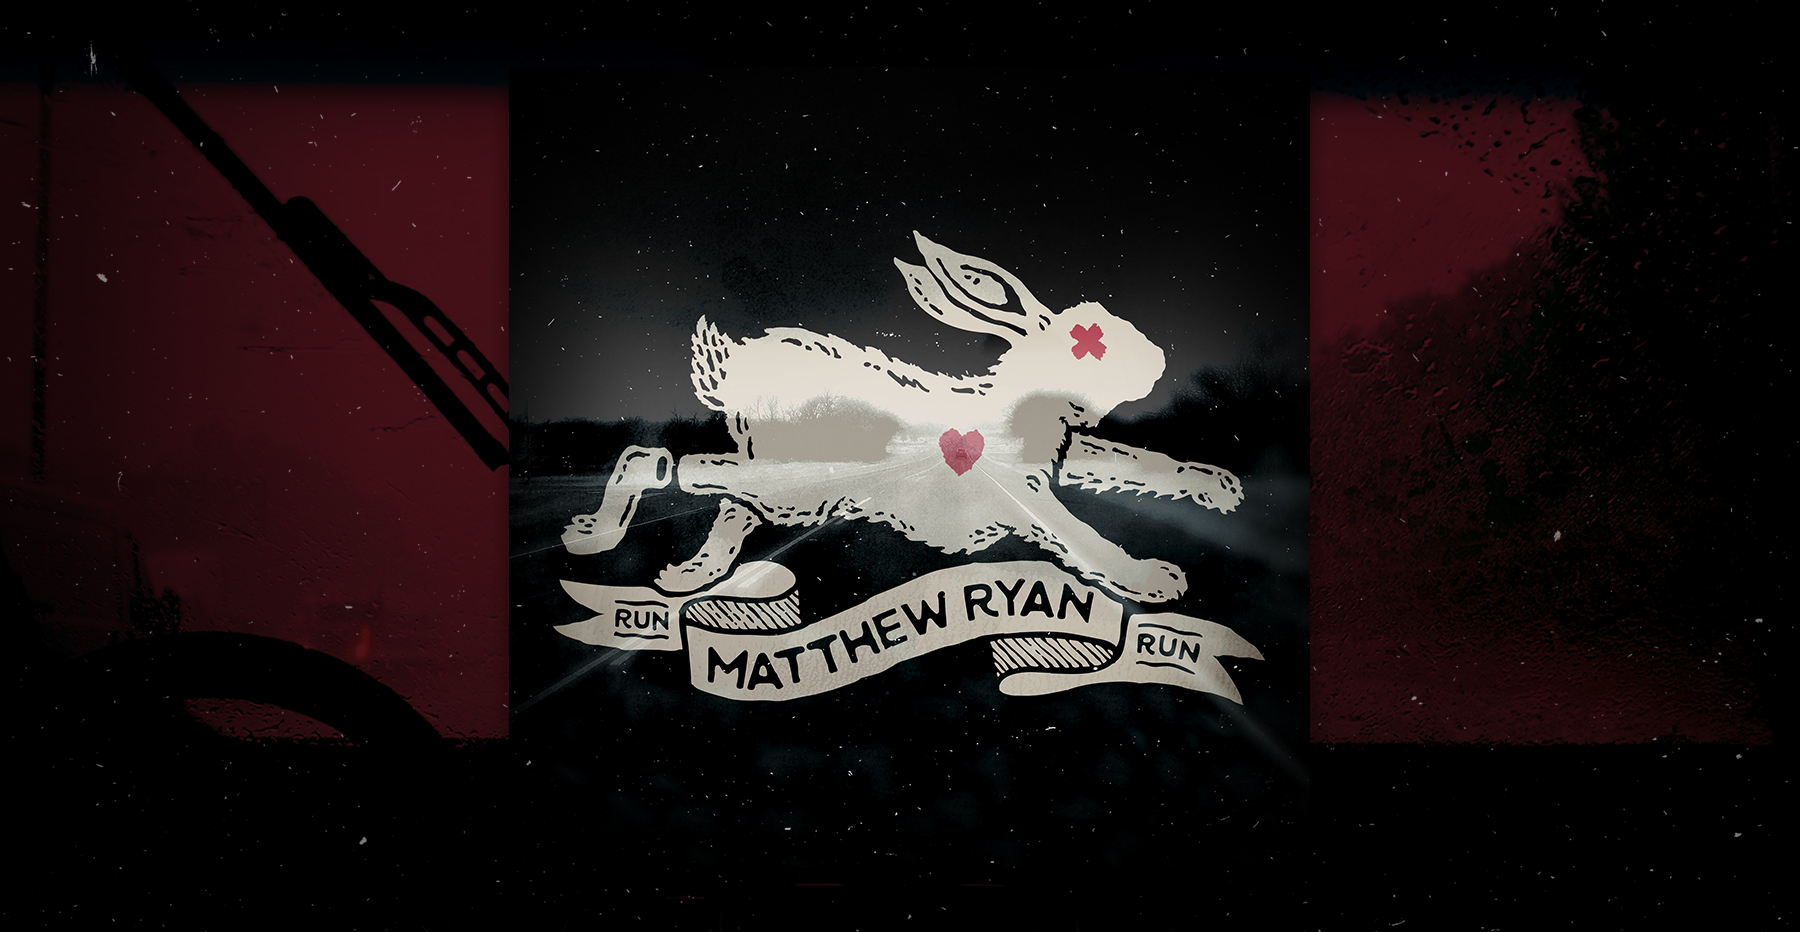 Matthew Ryan Run Rabbit Run Spotify Single